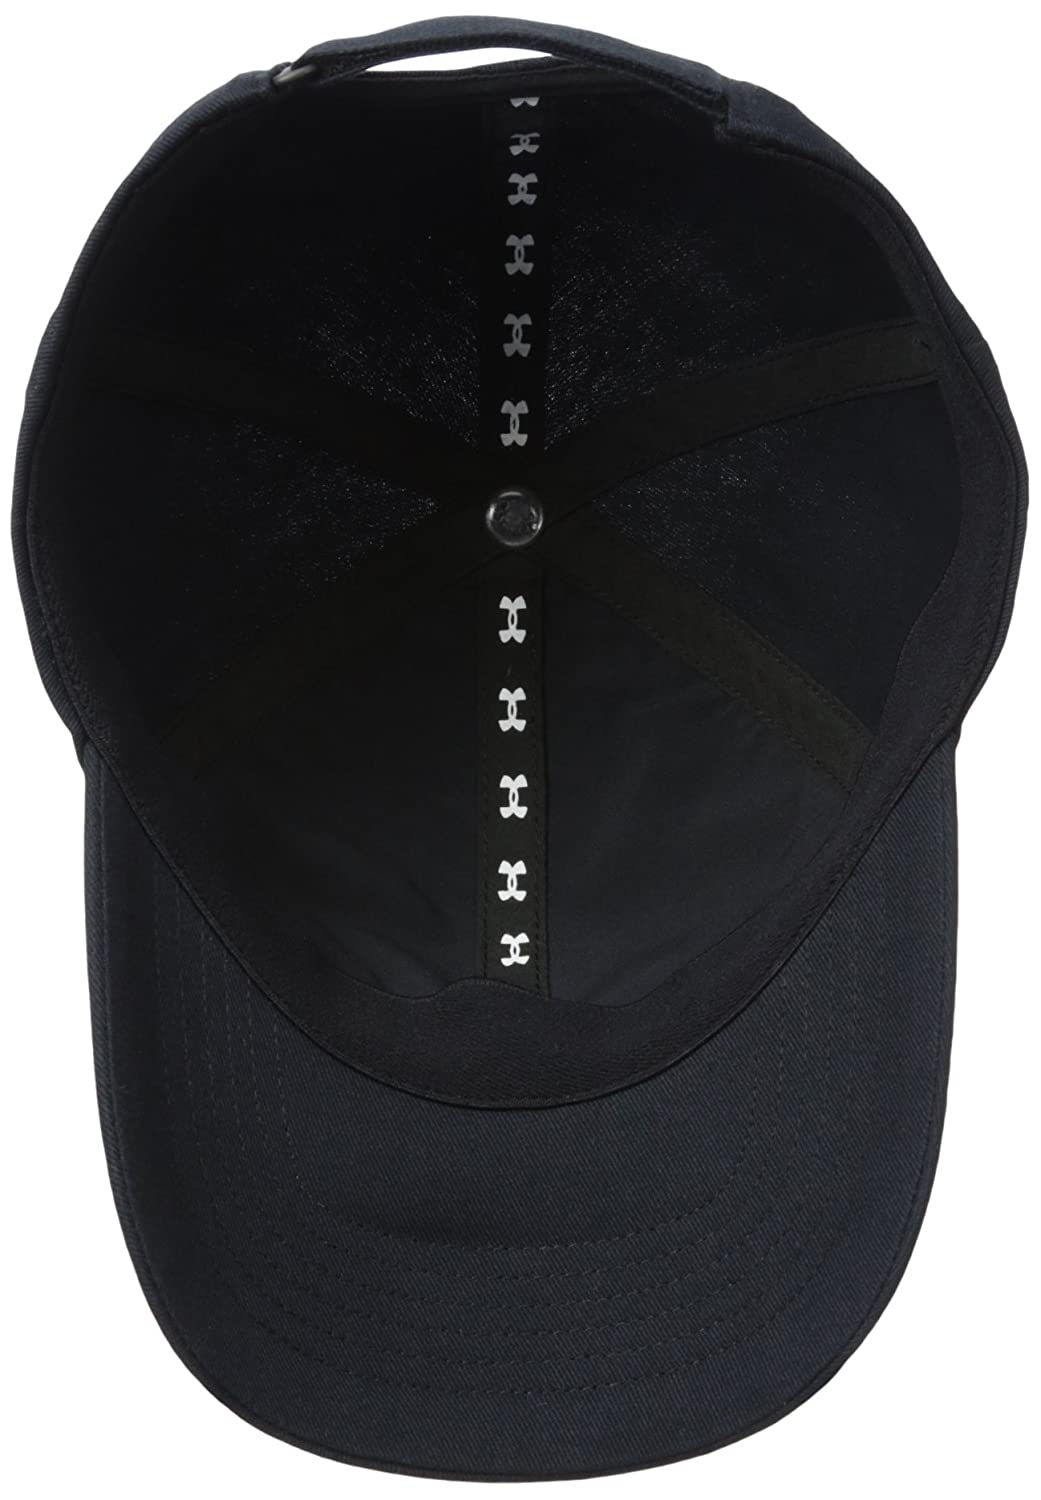 Under Armour Girls Girlong Sleeve Graphic Armour Cap Black One Size Under Armour Accessories 1304563 001